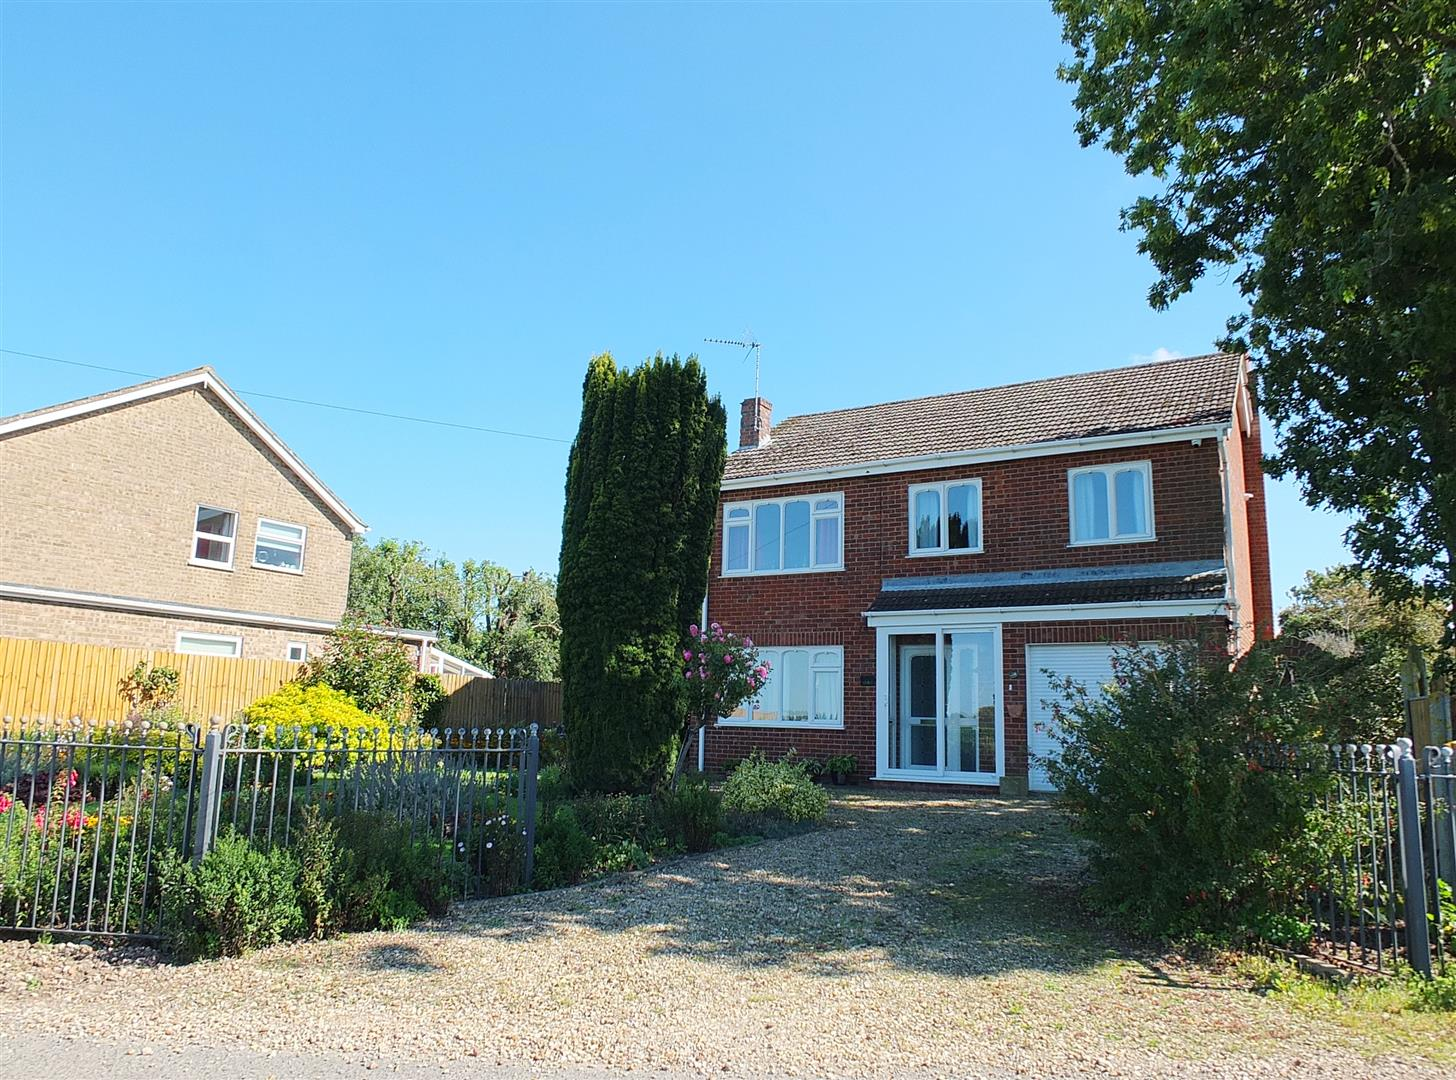 4 bed detached house for sale in Long Sutton Spalding, PE12 9DN, PE12